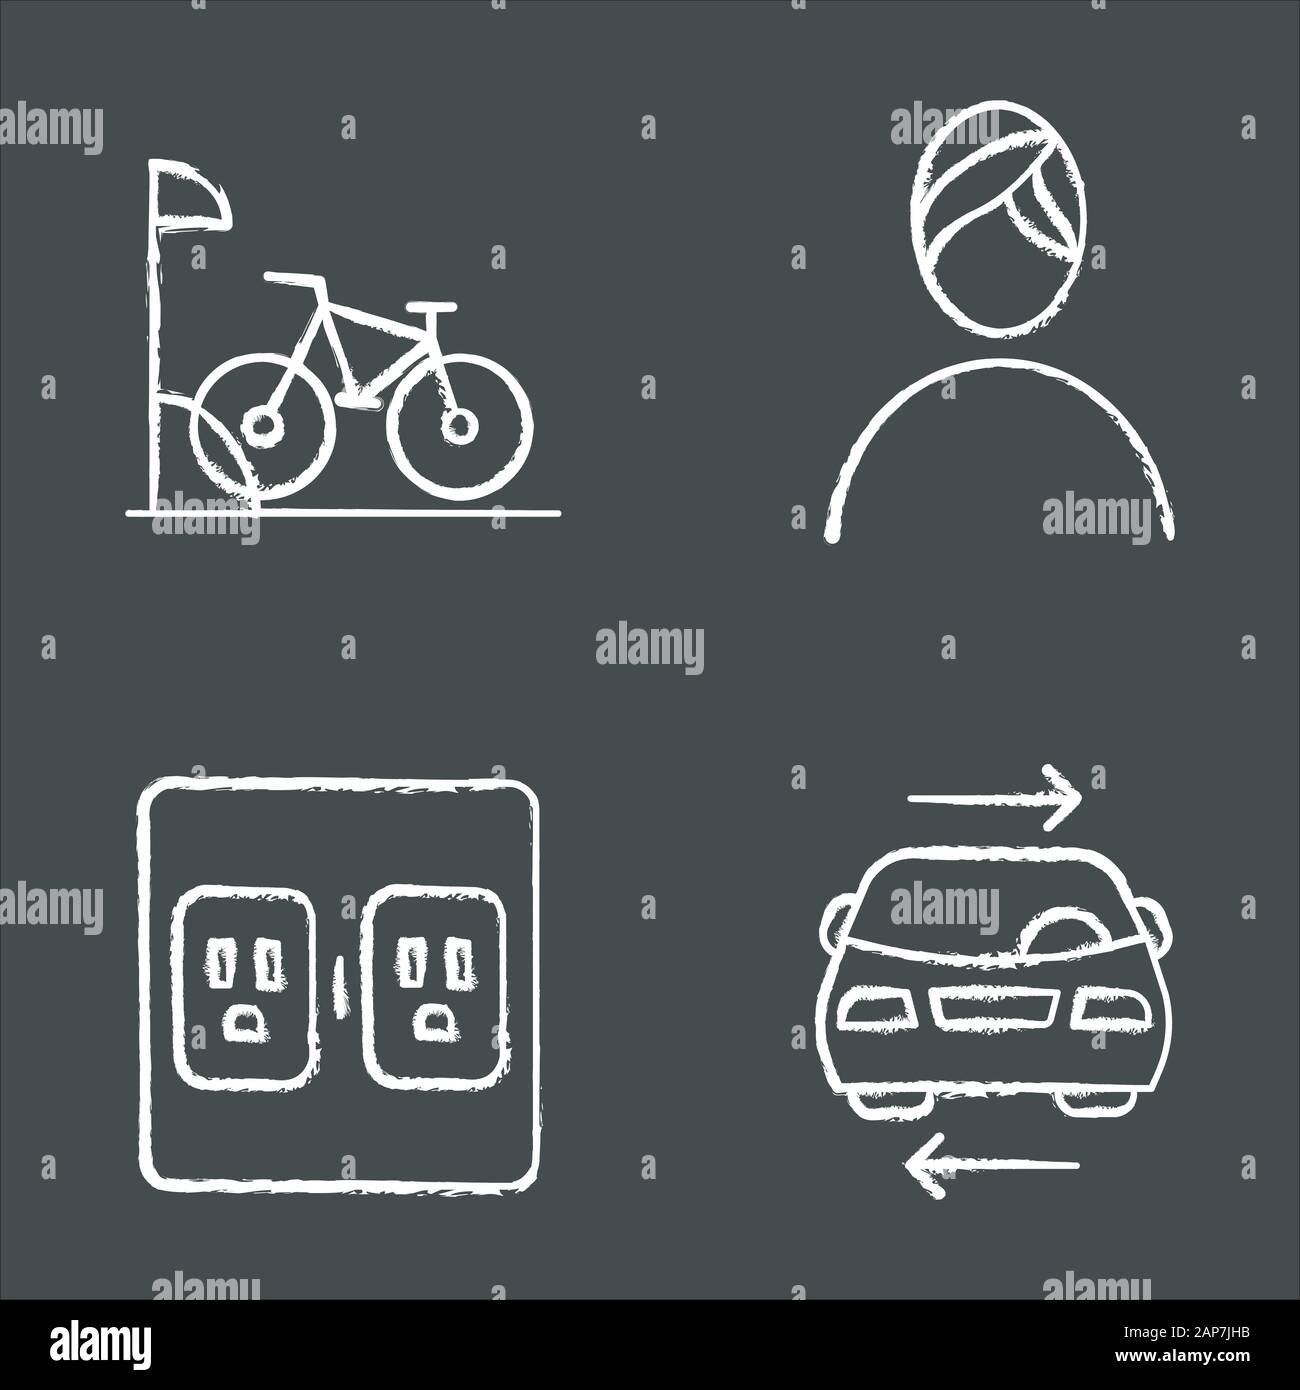 Apartment amenities chalk icons set. Bike parking, spa, shared car service, charging outlets. Residential services. Luxuries for dwelling inhabitants. Stock Vector